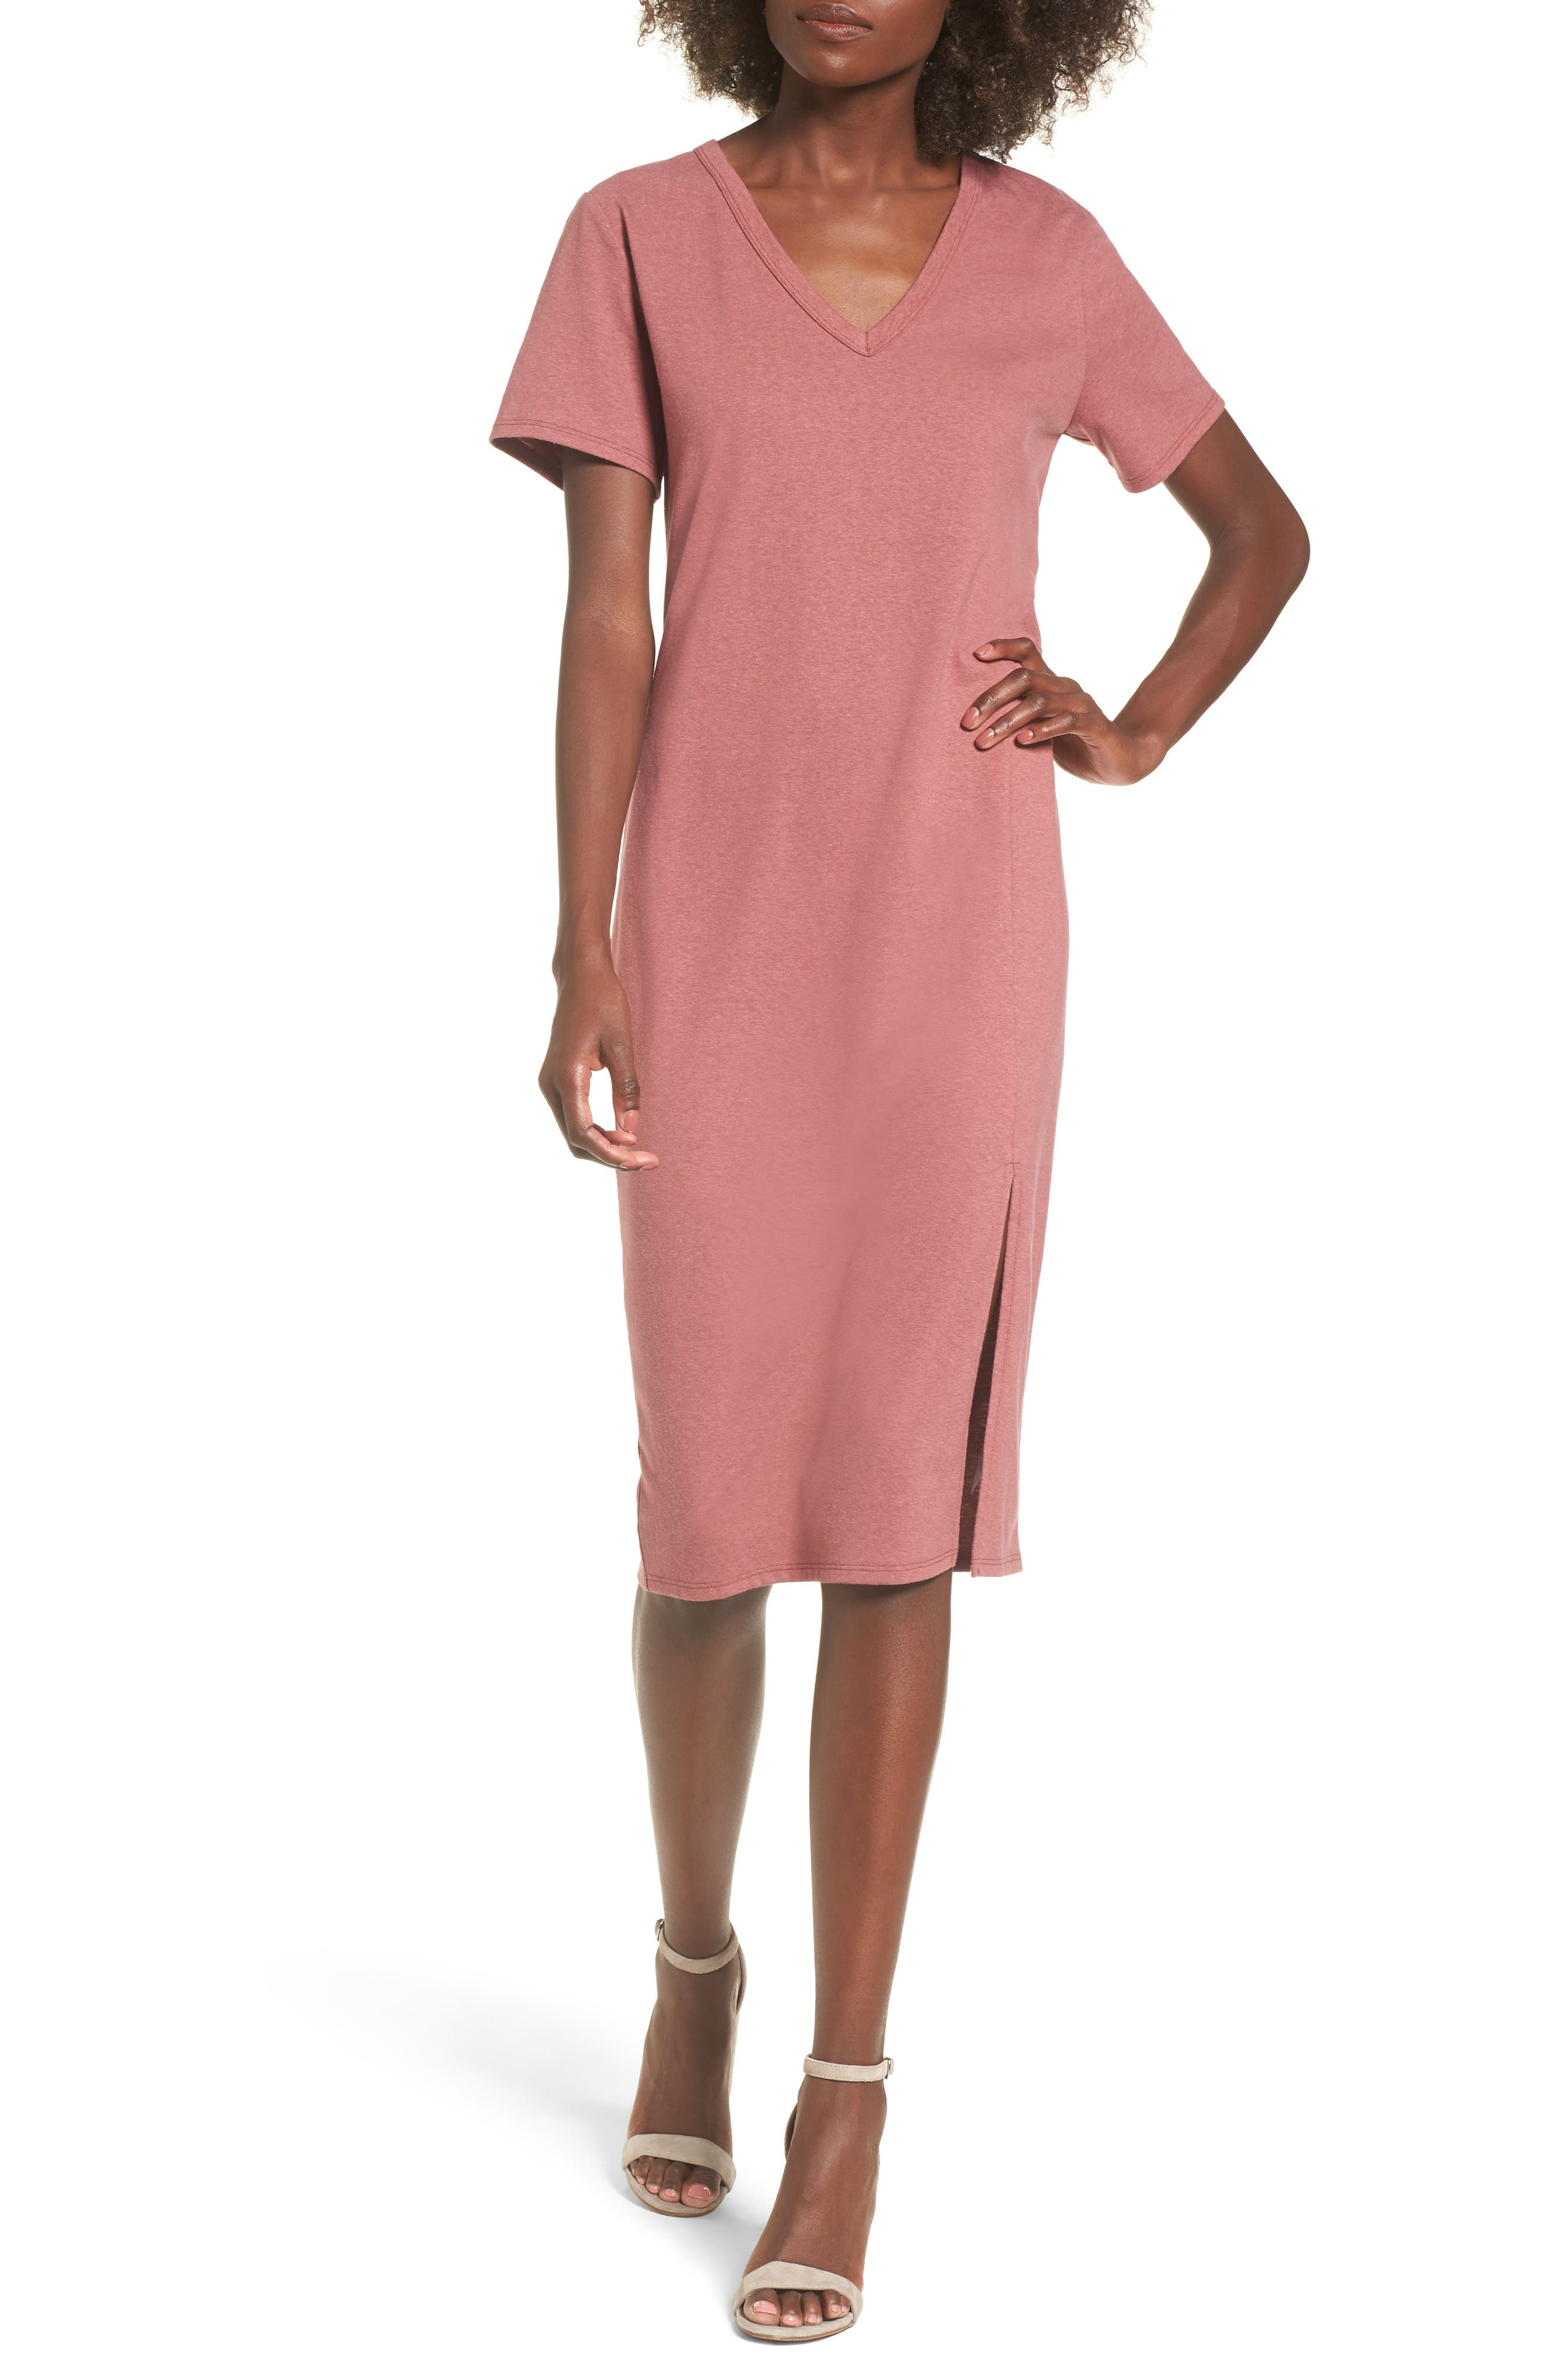 Alternate Image 1 Selected - Socialite Knee Length T-Shirt Dress